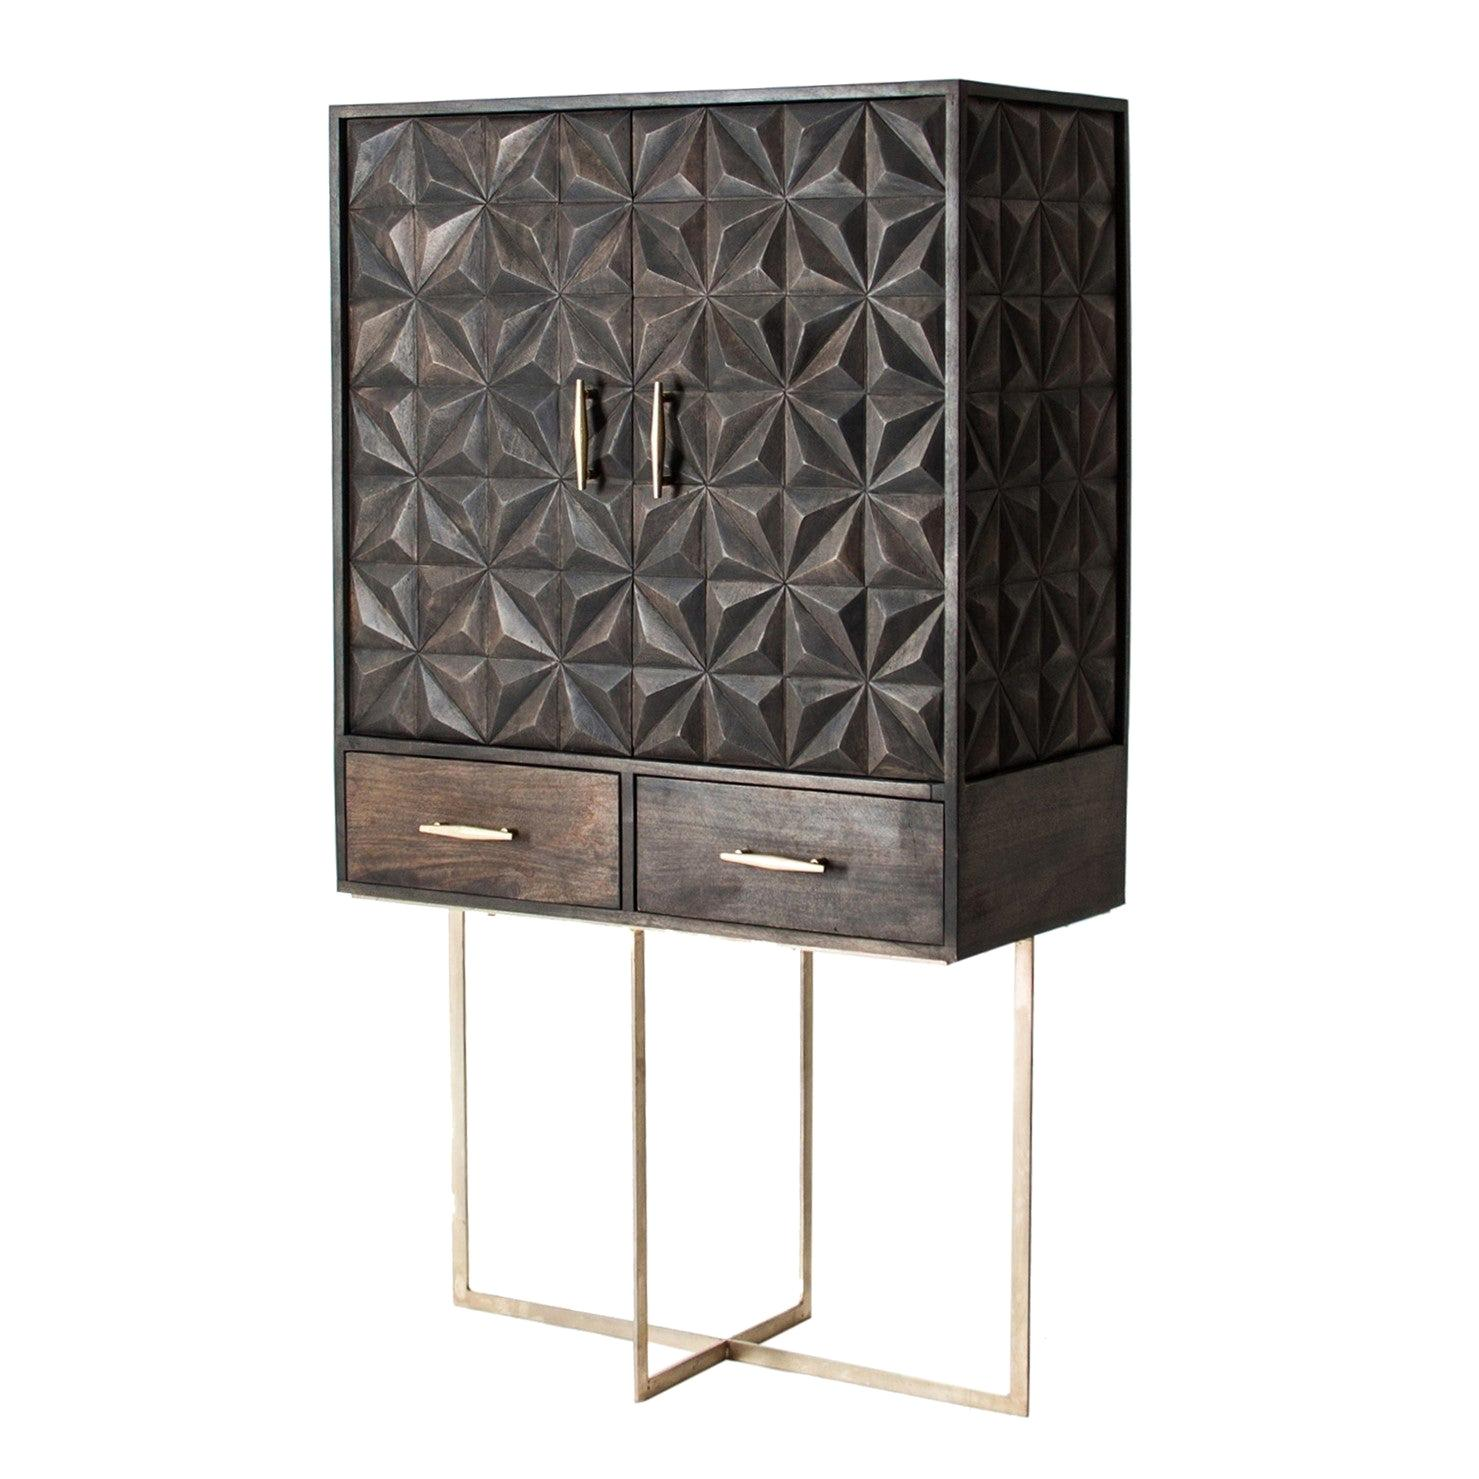 Brutalist Style Wooden and Gilded Metal Dry Bar Cabinet